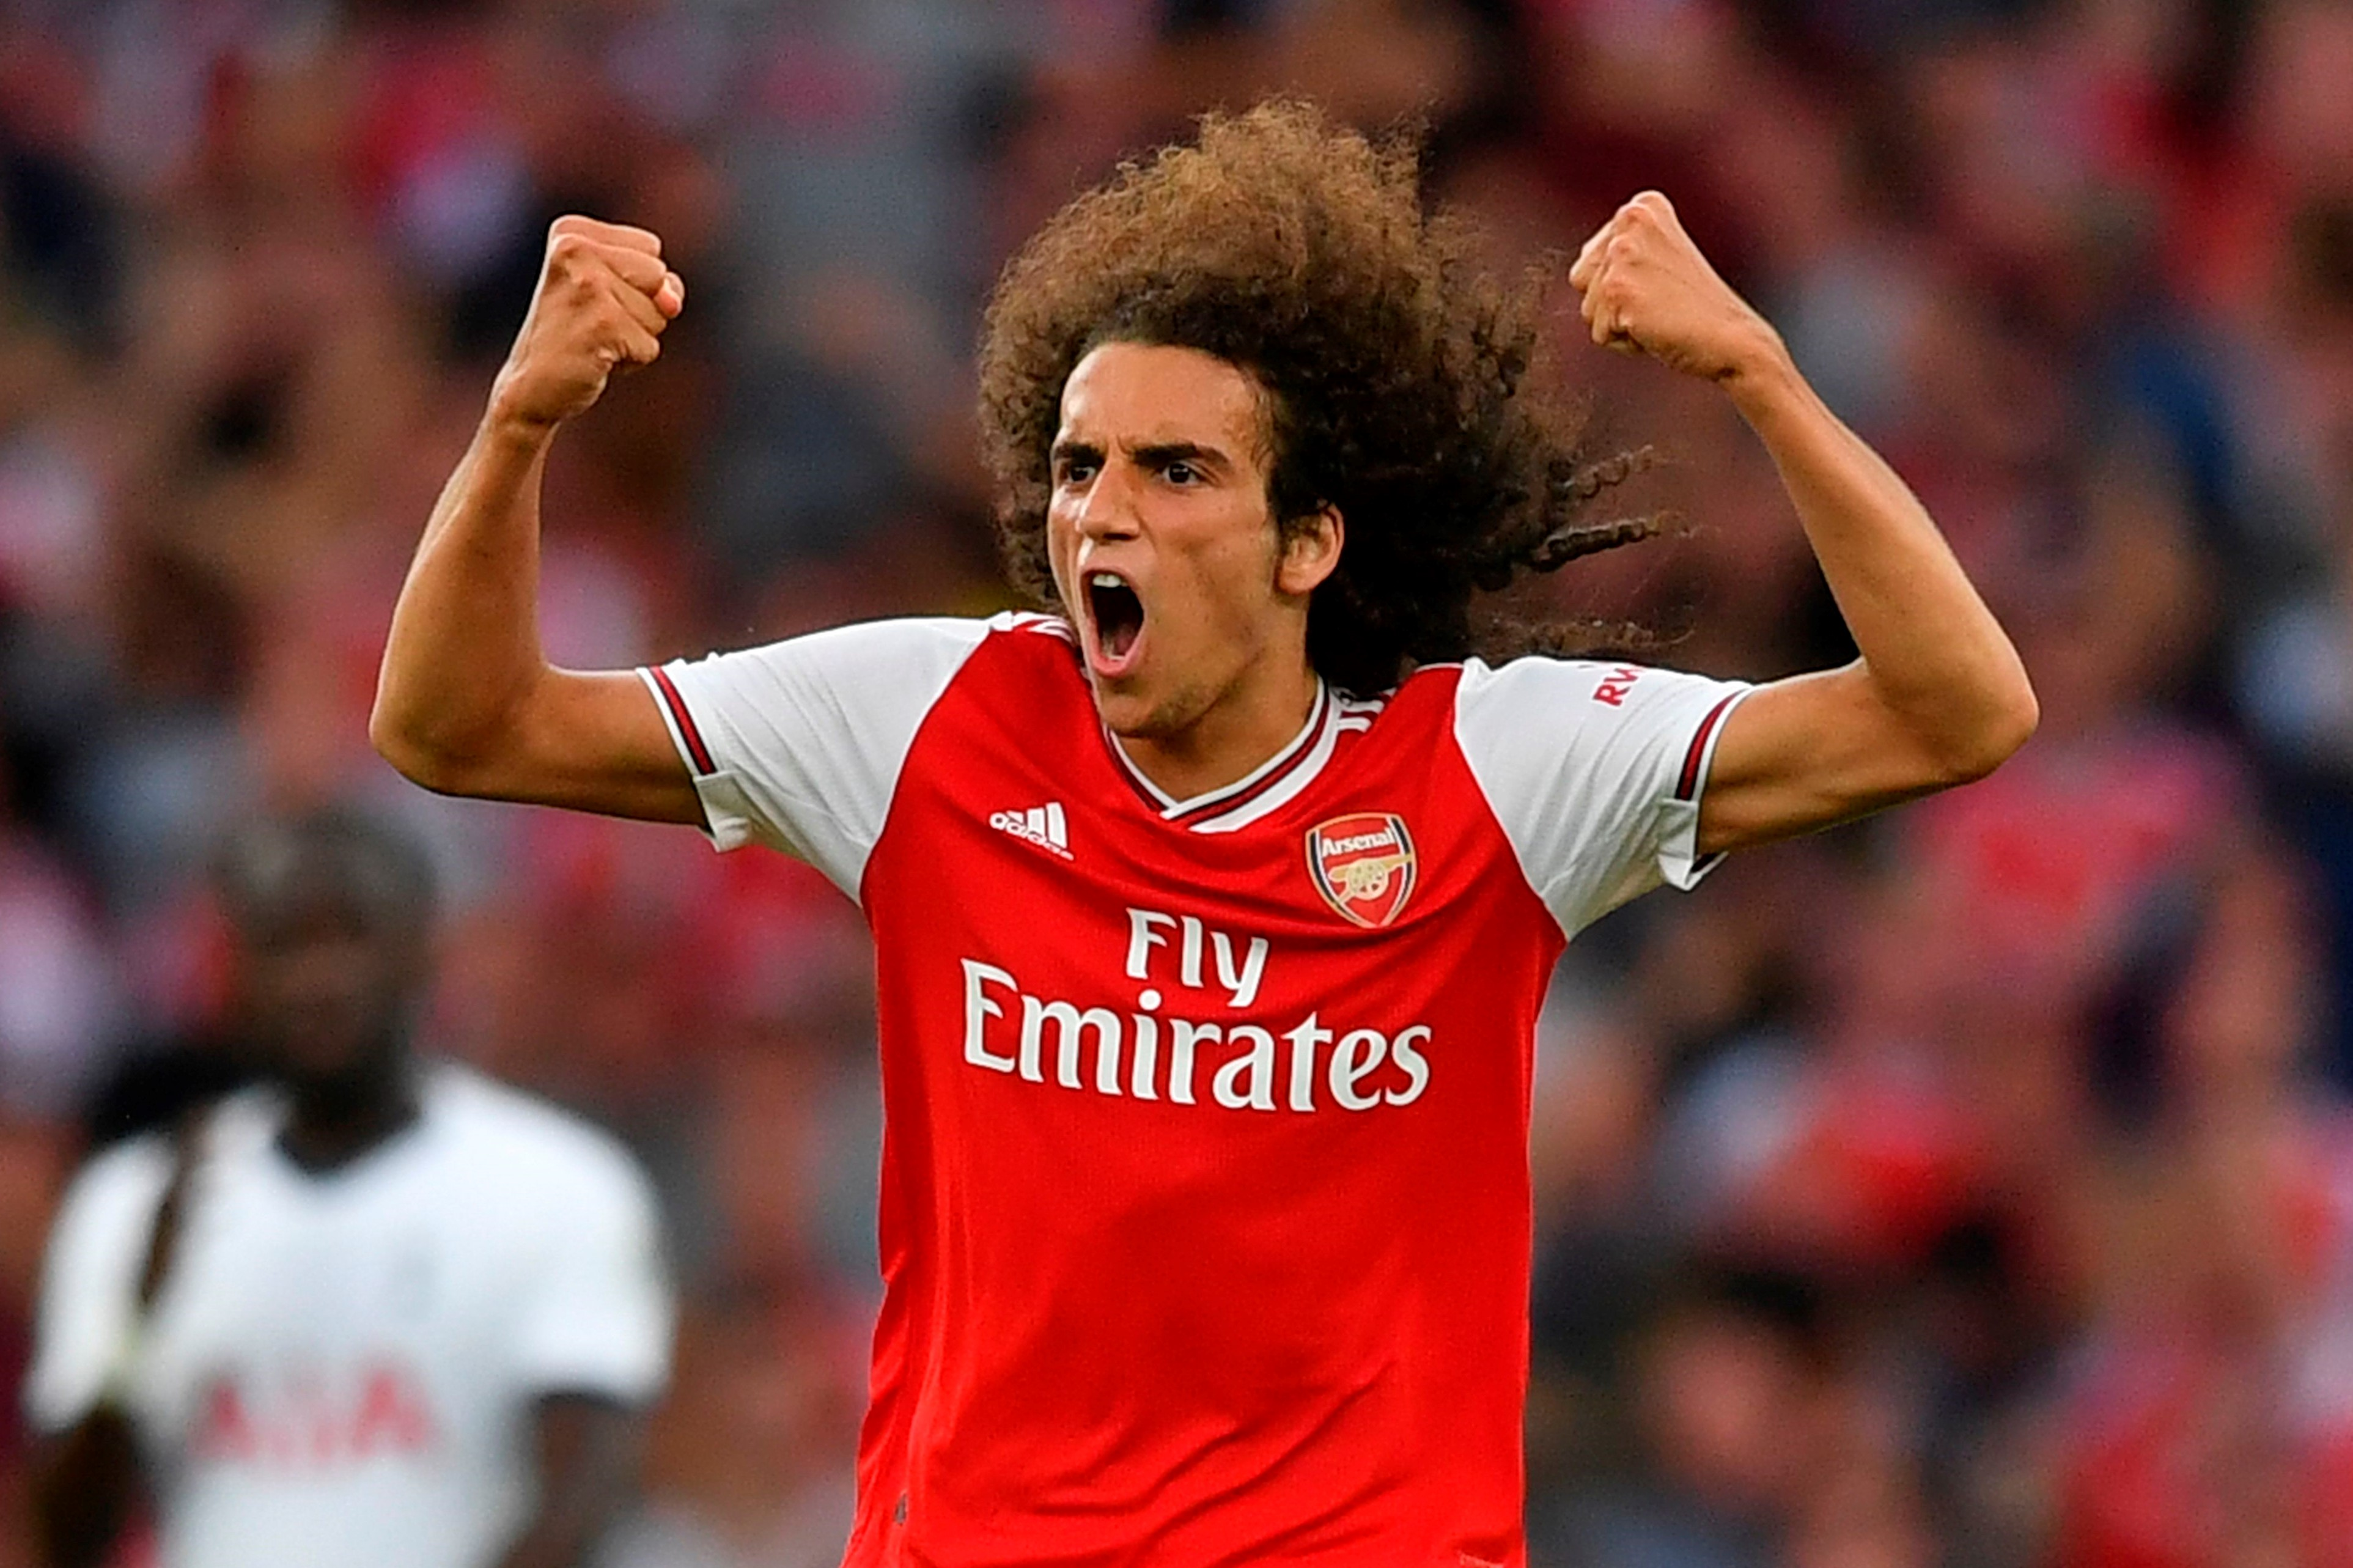 Guendouzi fast becoming Arsenal's leader